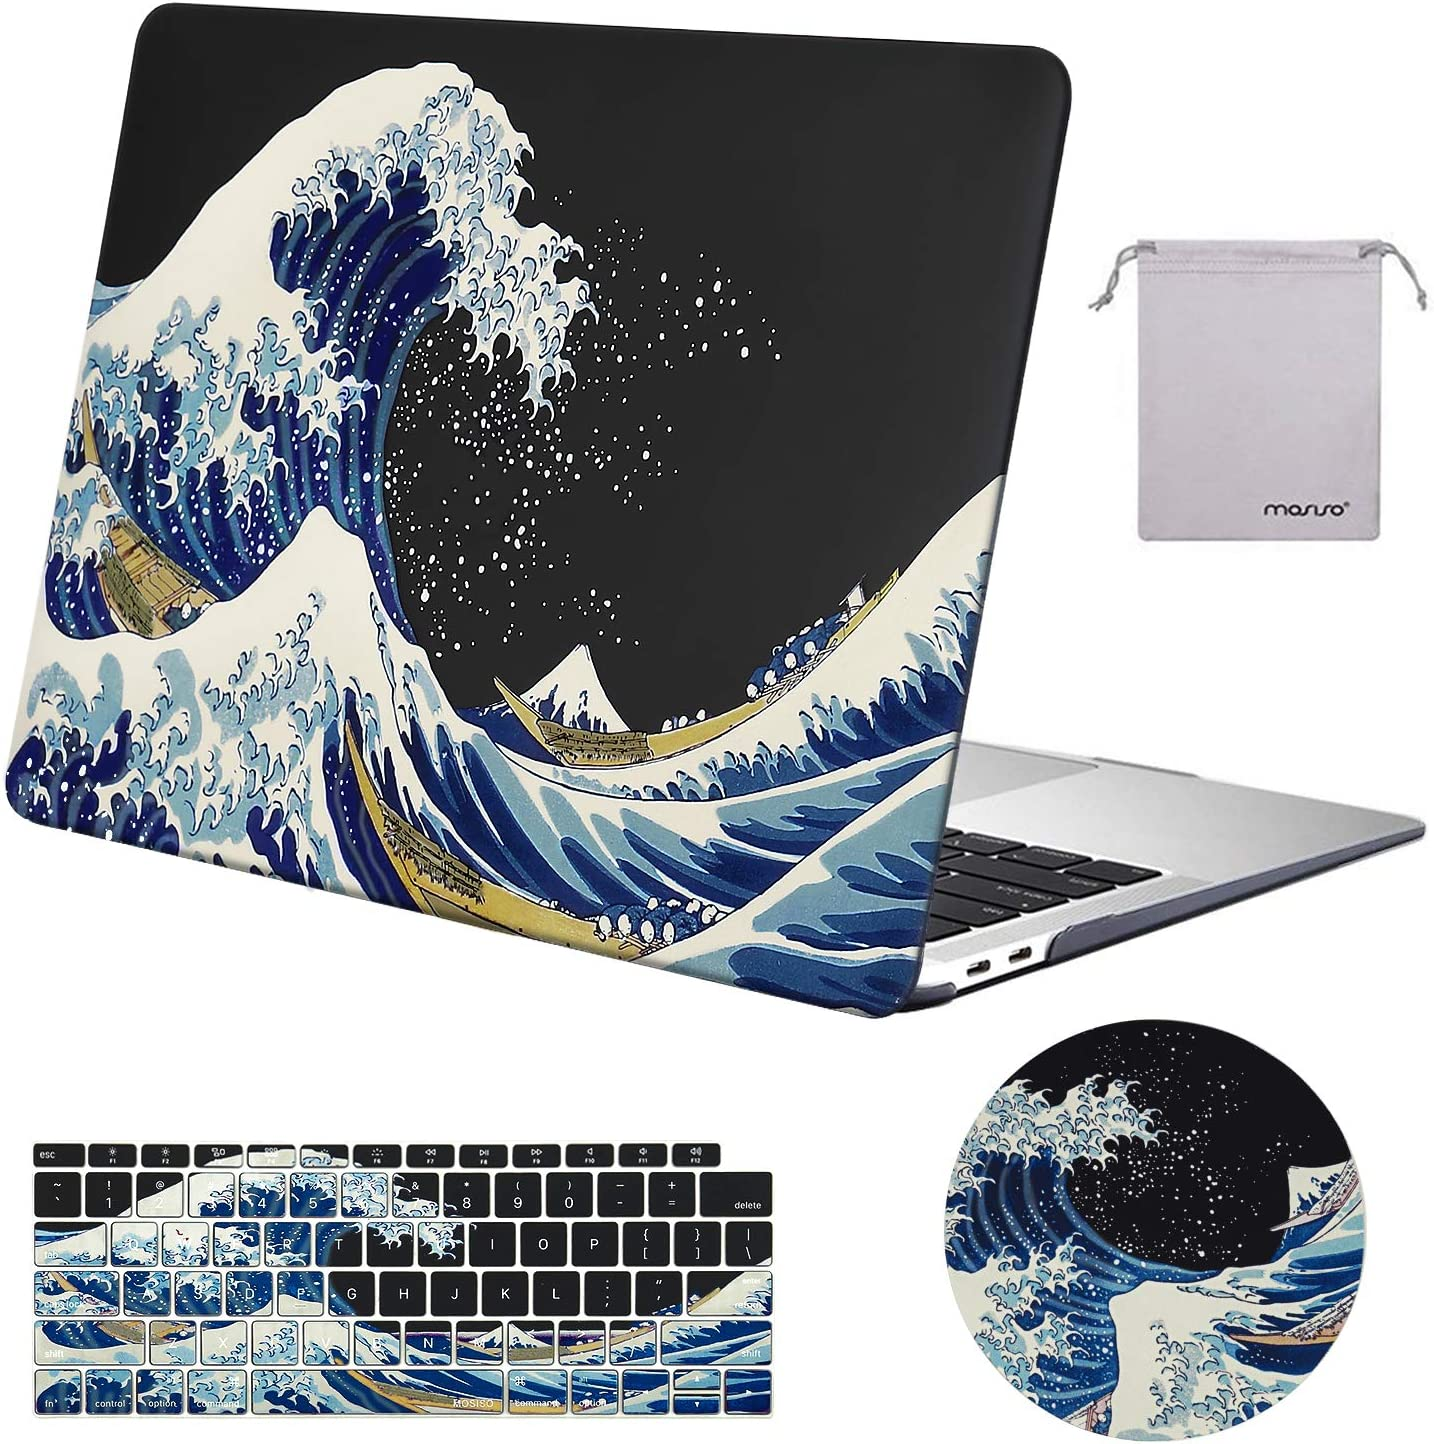 MOSISO MacBook Air 13 inch Case 2020 2019 2018 Release A2179 A1932 Retina Display,Plastic Pattern Hard Case&Keyboard Cover&Mouse Pad&Storage Bag Only Compatible with MacBook Air 13,Sea Wave Black Base